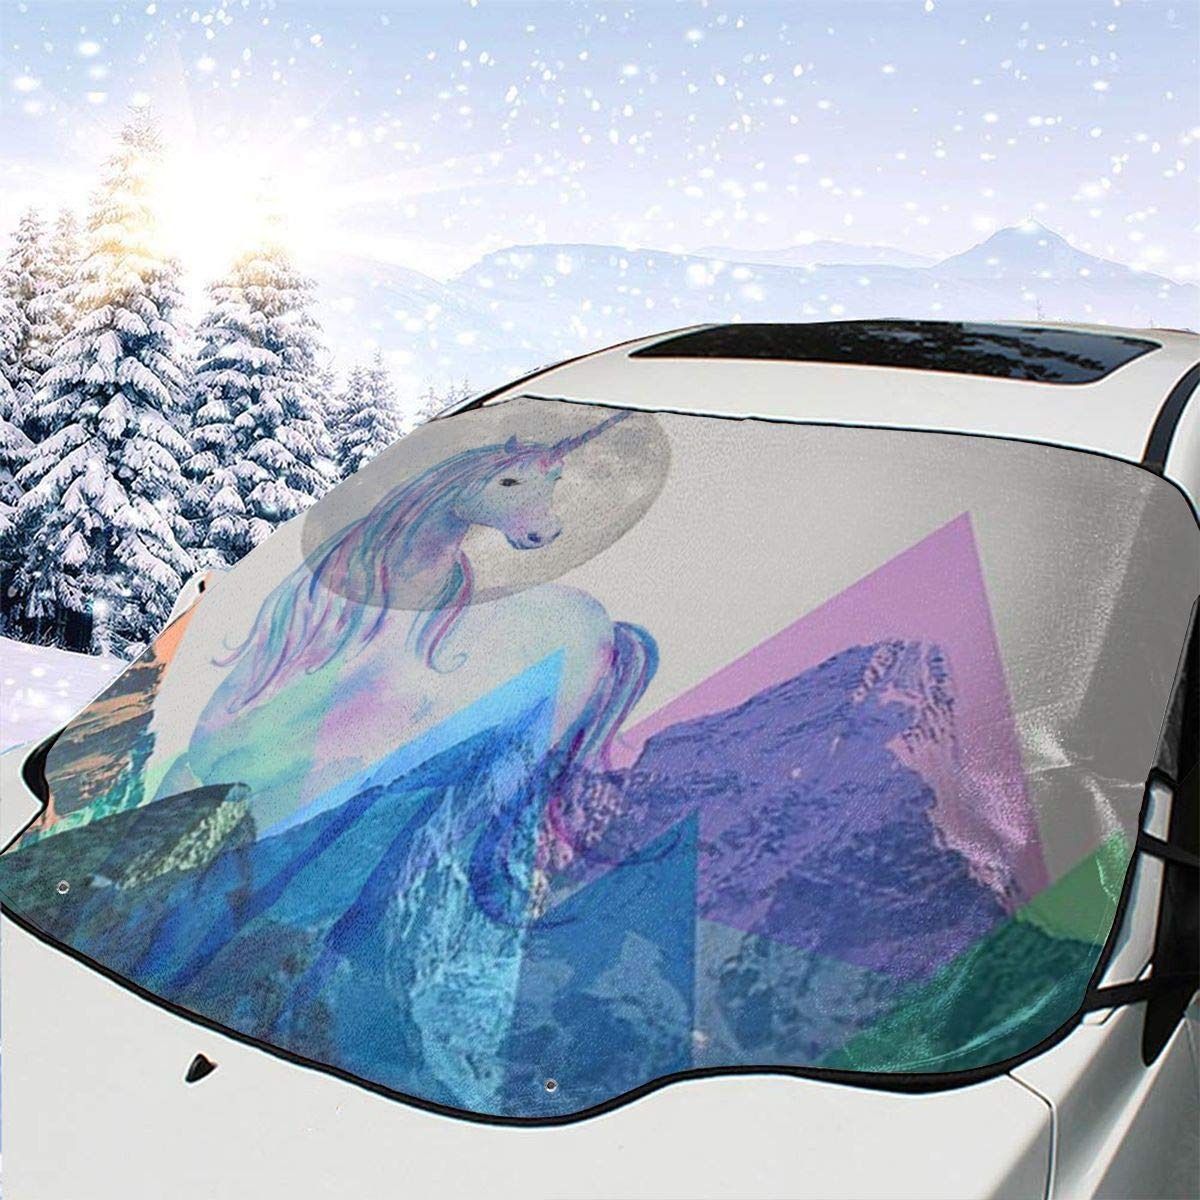 THONFIRE Car Front Window Windshield Winter Sun Shade Llama Unicorn Cover Rainproof Blocks UV Rays Damage Free Visor Protector Automobile Summer Heatshield by THONFIRE